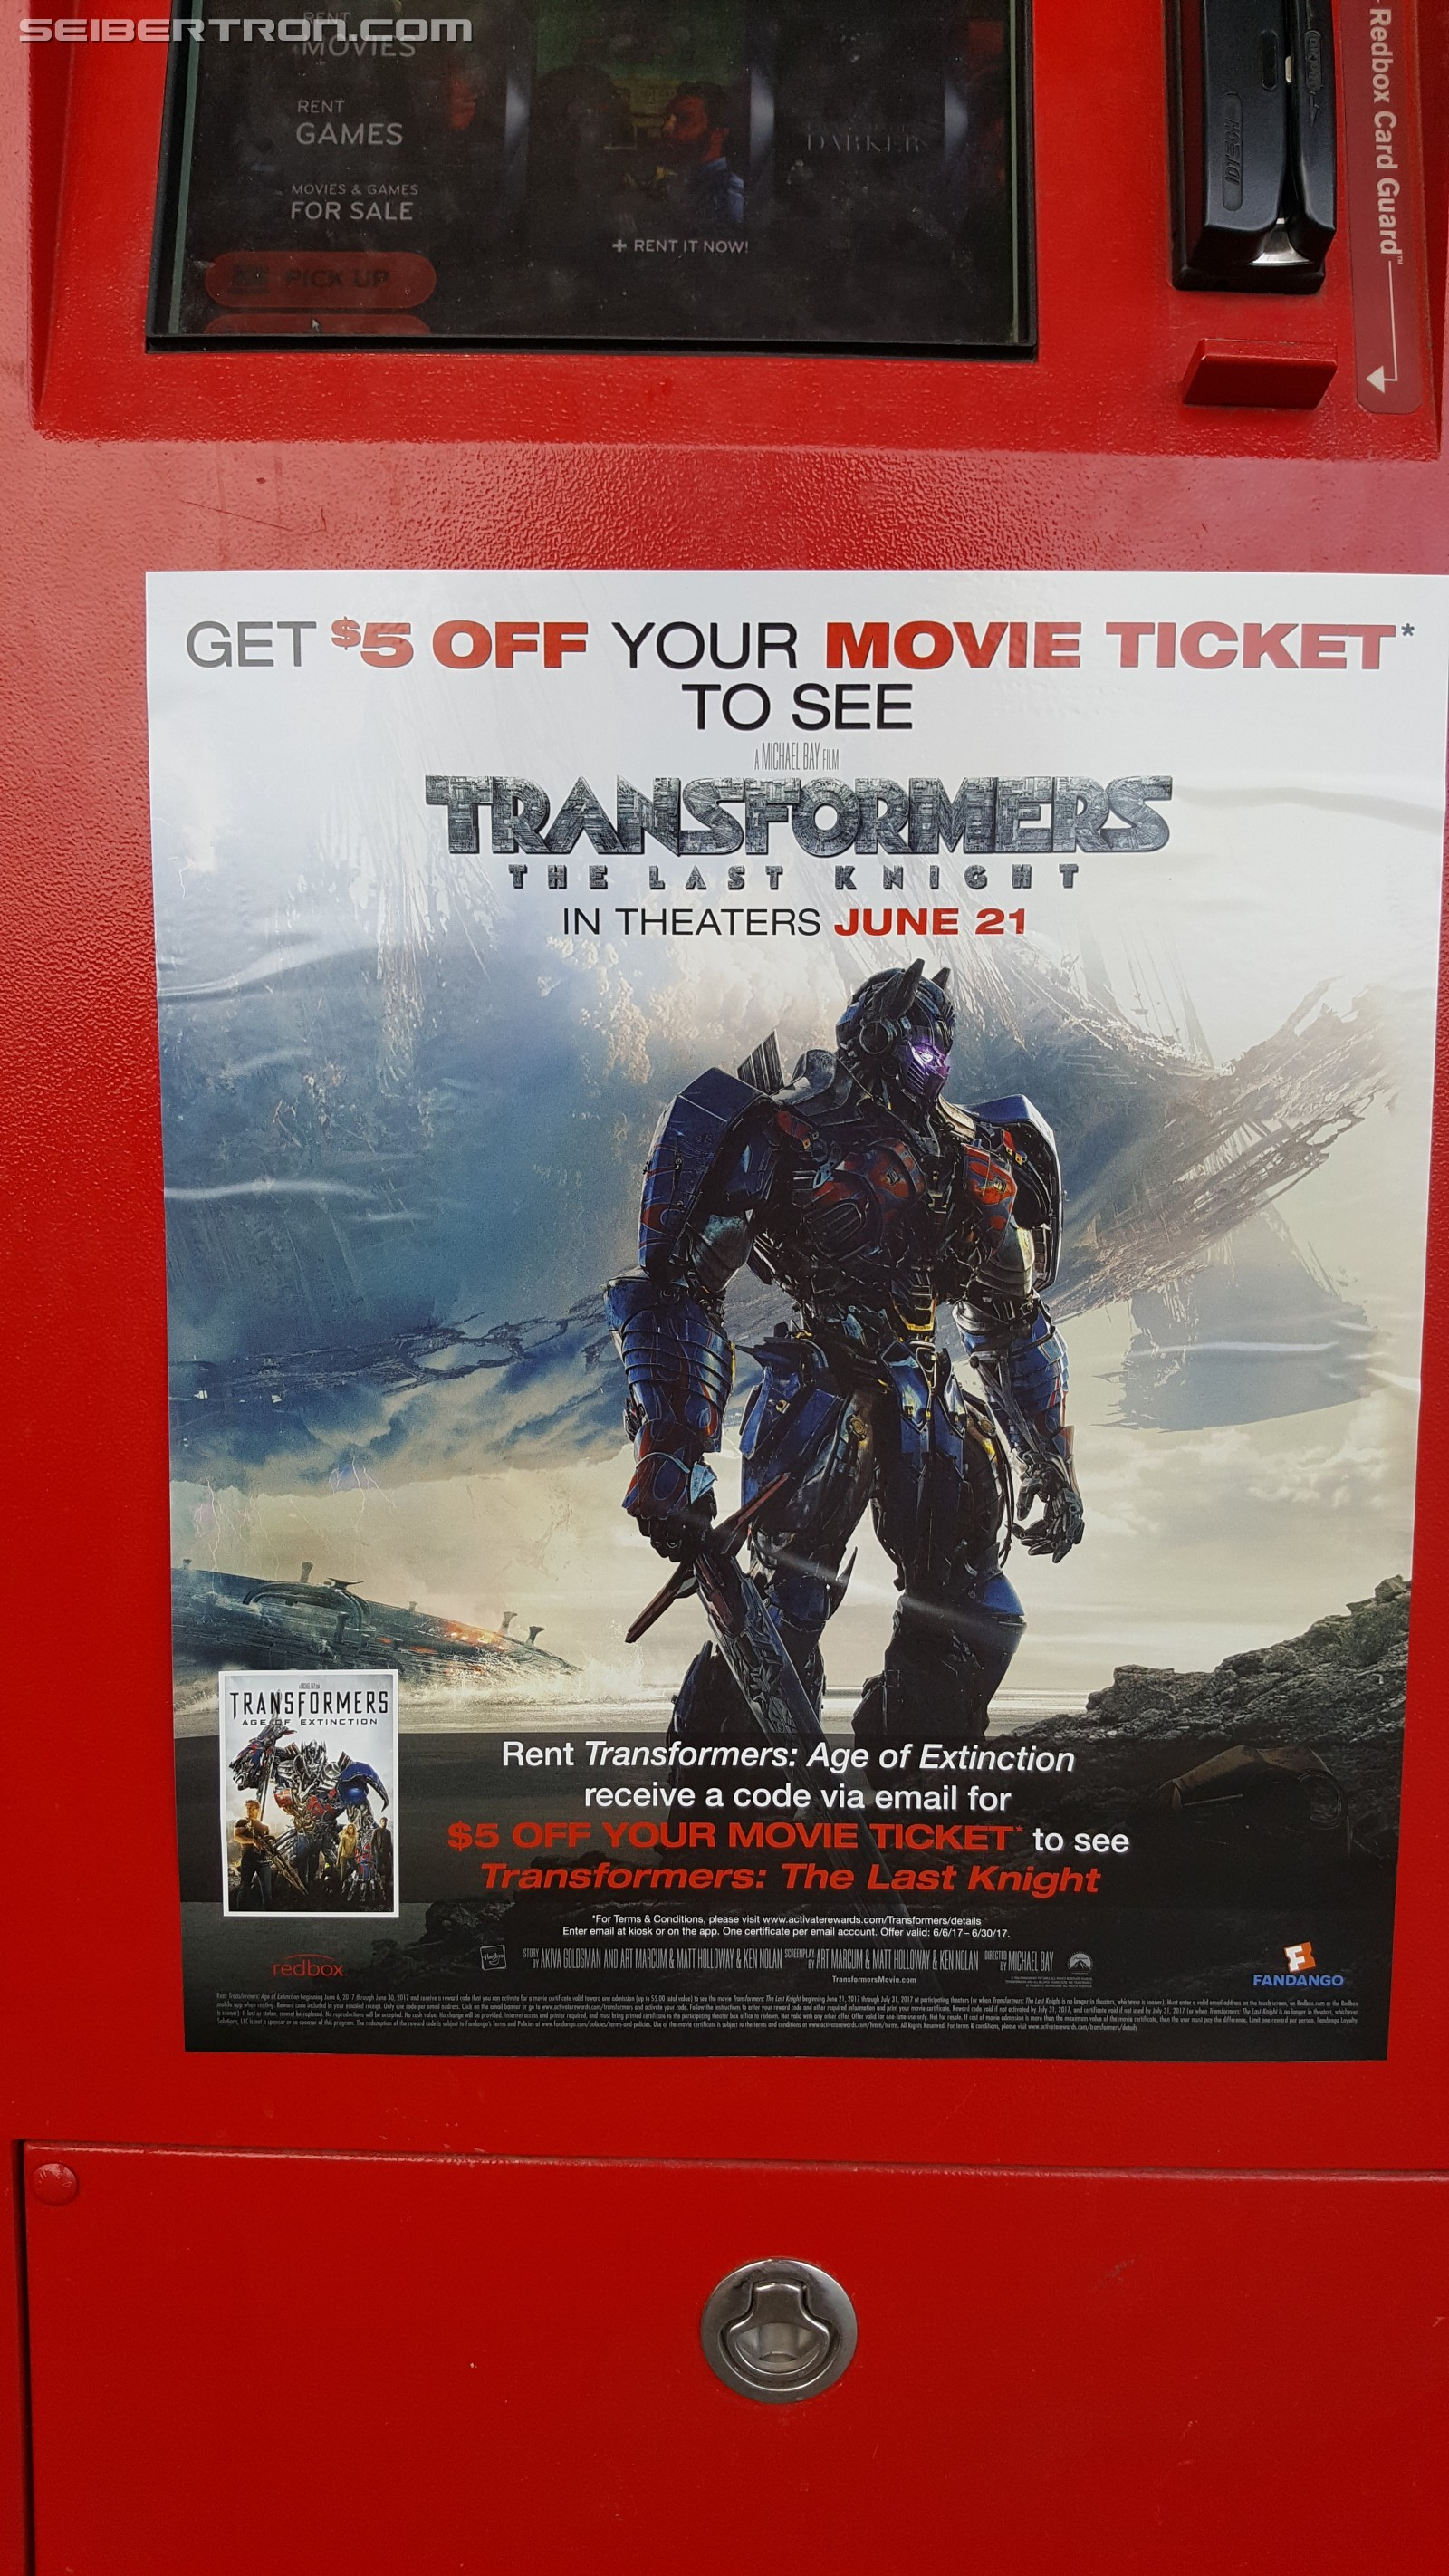 Transformers The Last Knight Redbox Promotion